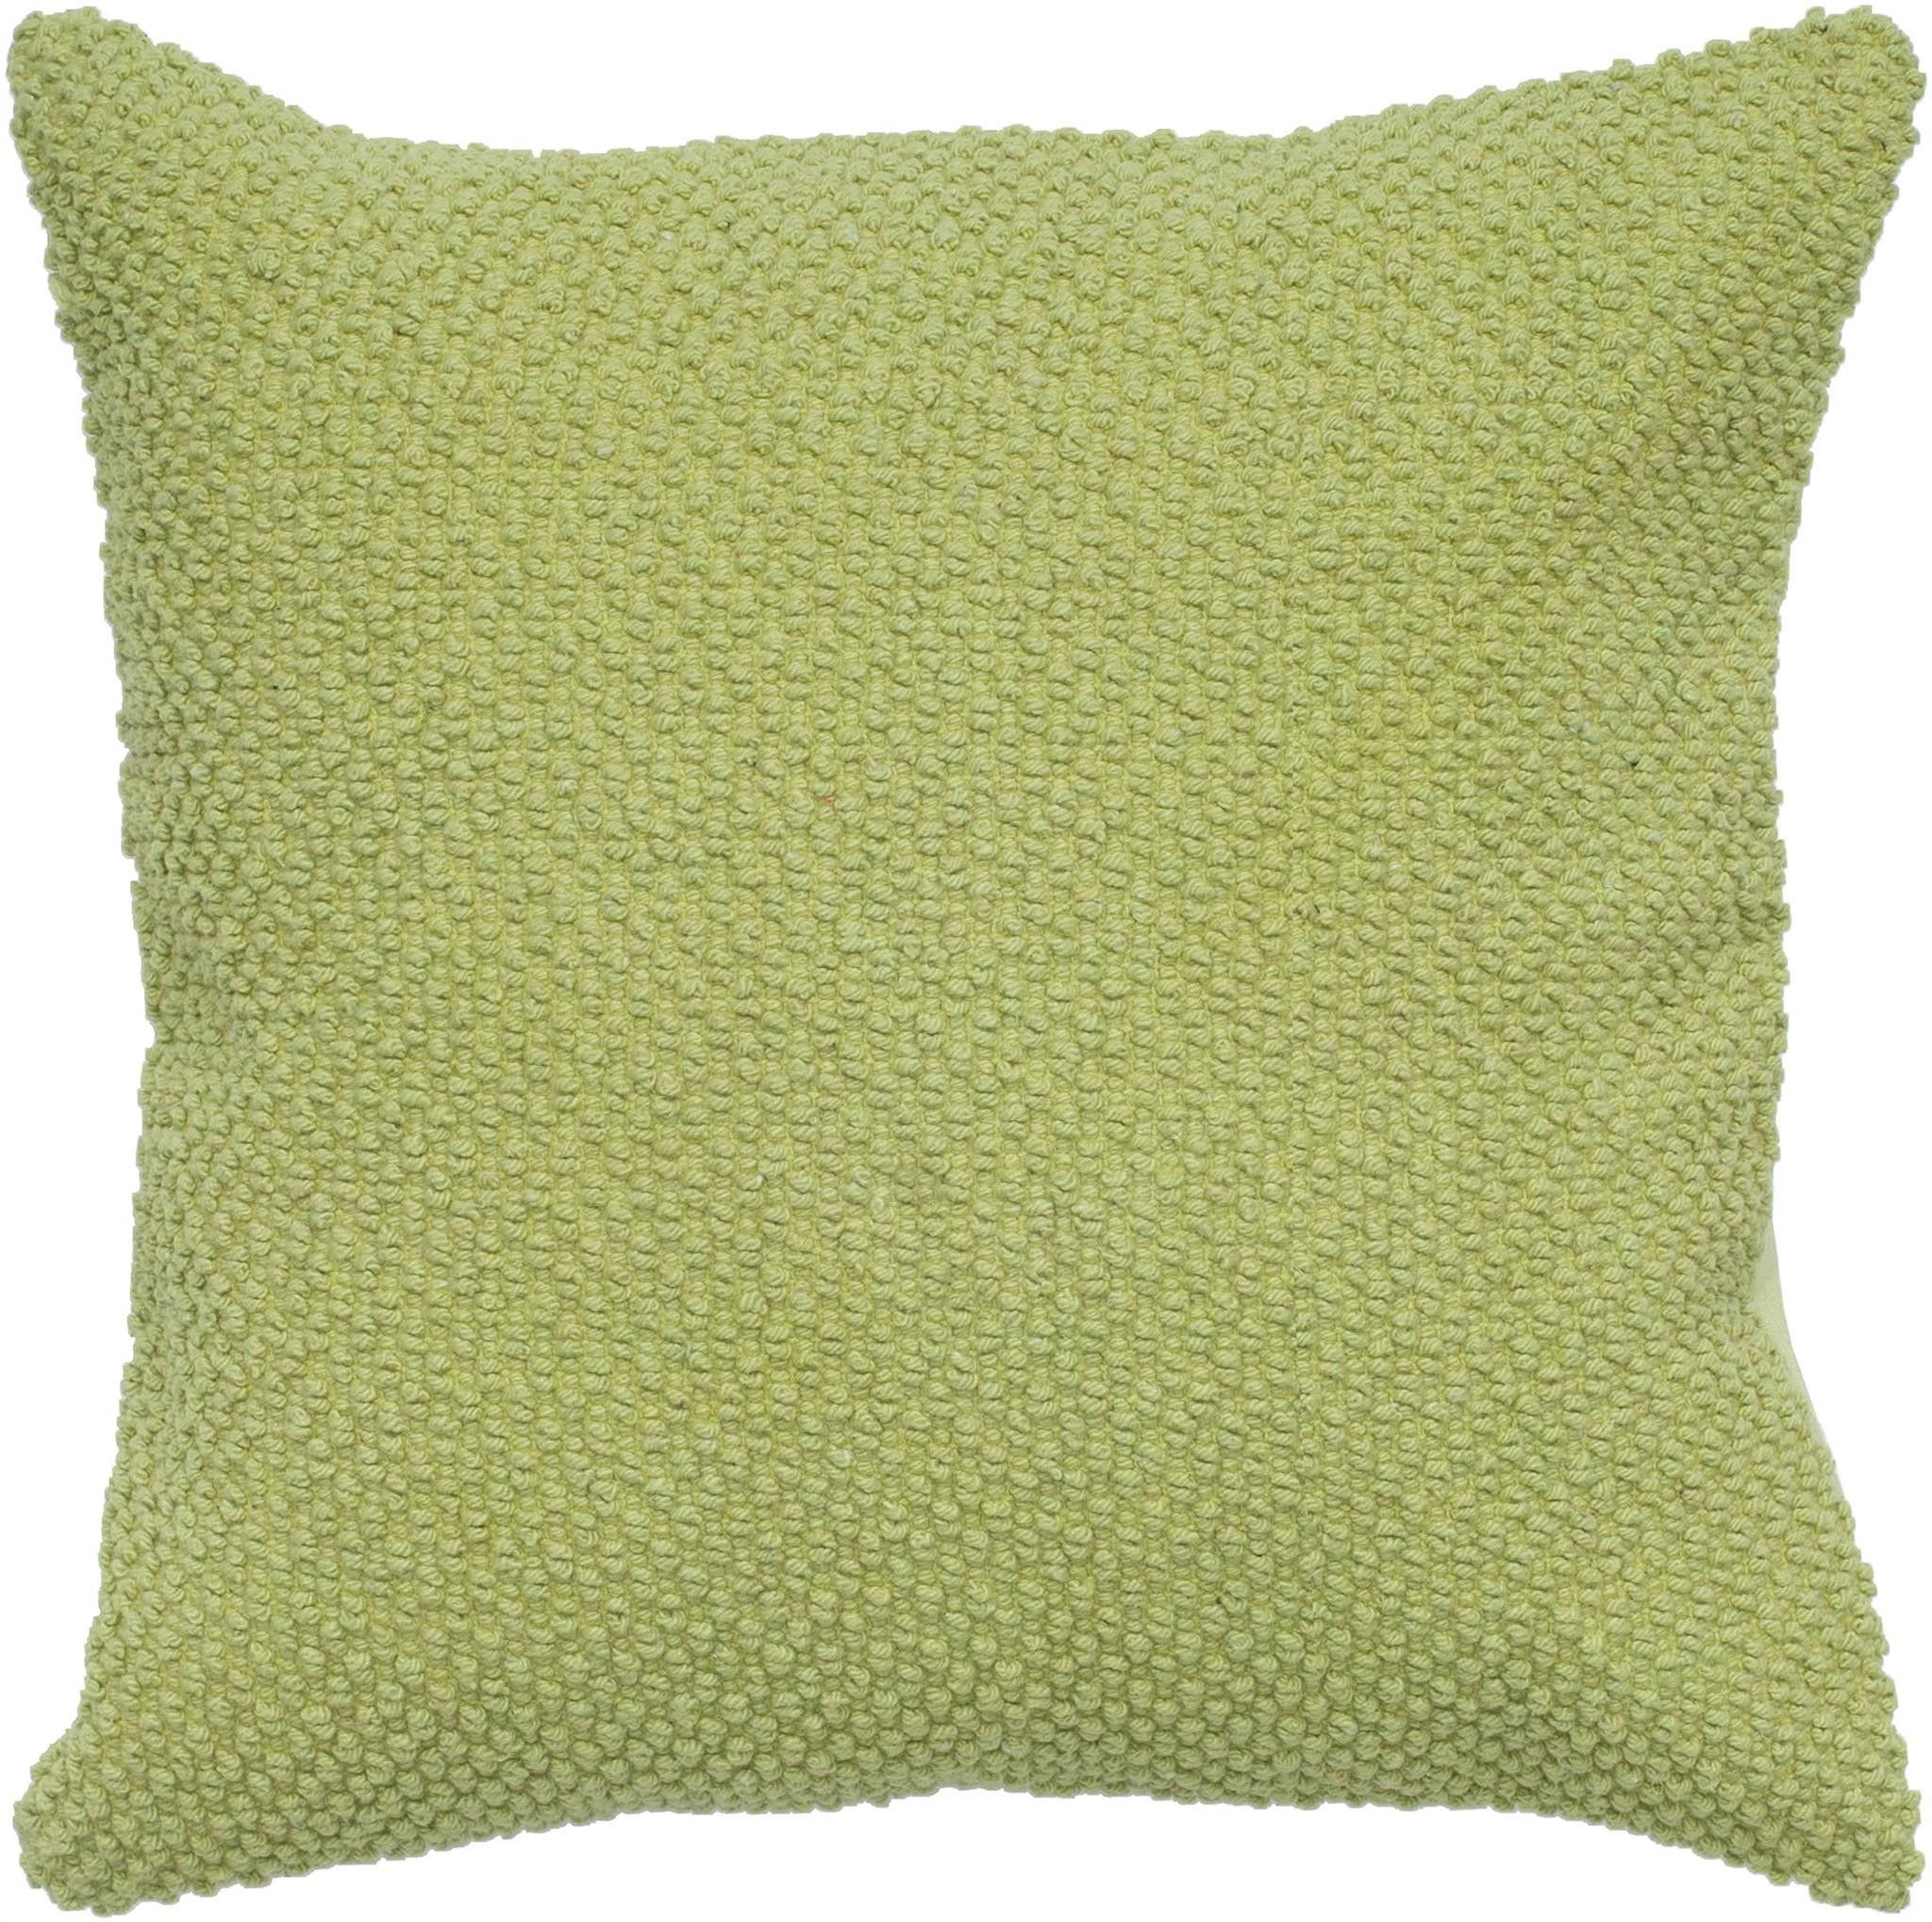 accent outdoor sage blue of green indoor zippered pillows throw pillow teal gray fresh olive